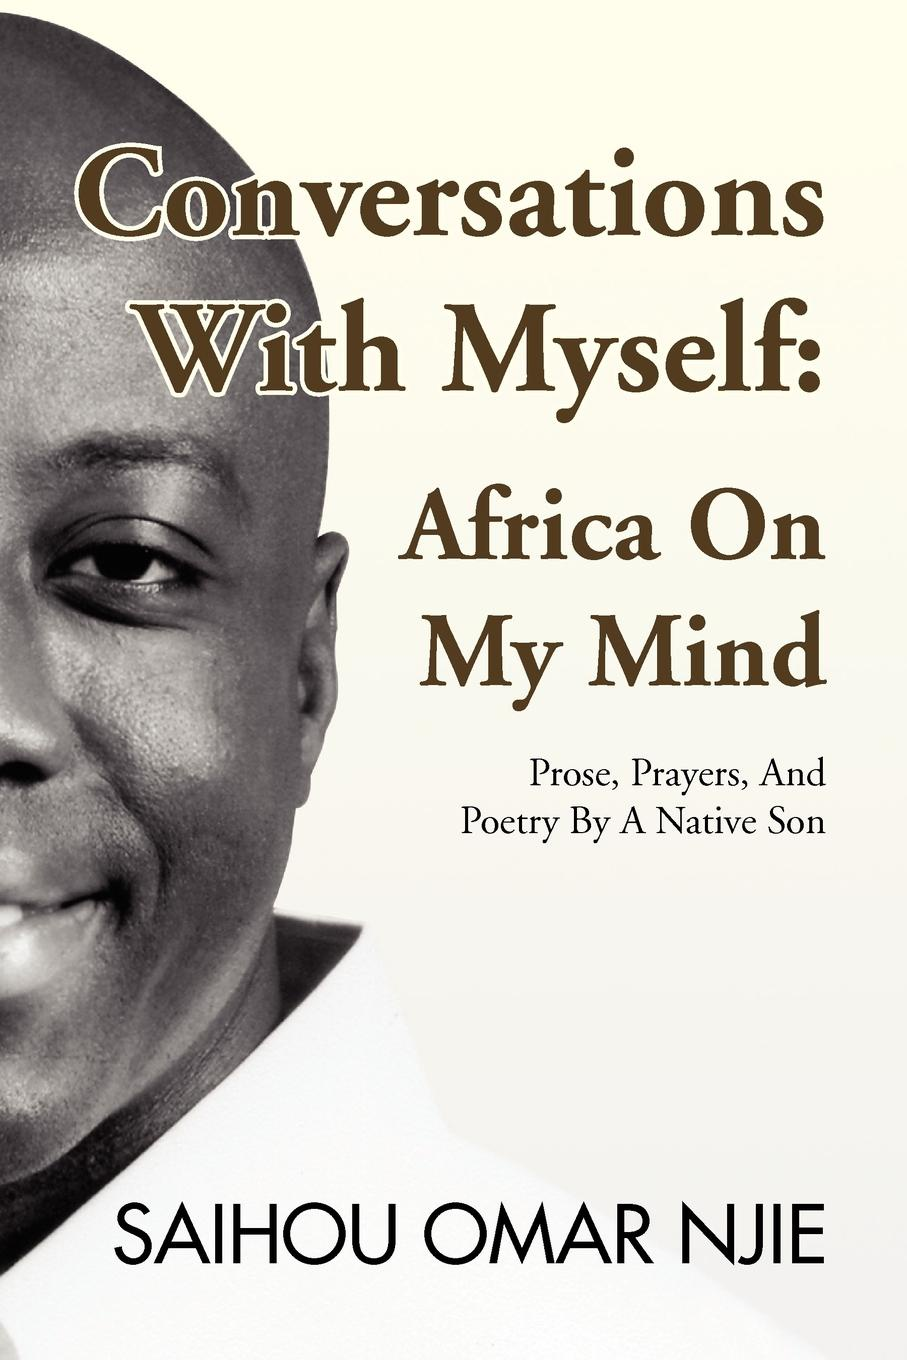 Saihou Omar Njie Conversations With Myself. Africa On My Mind zygmunt bauman on education conversations with riccardo mazzeo